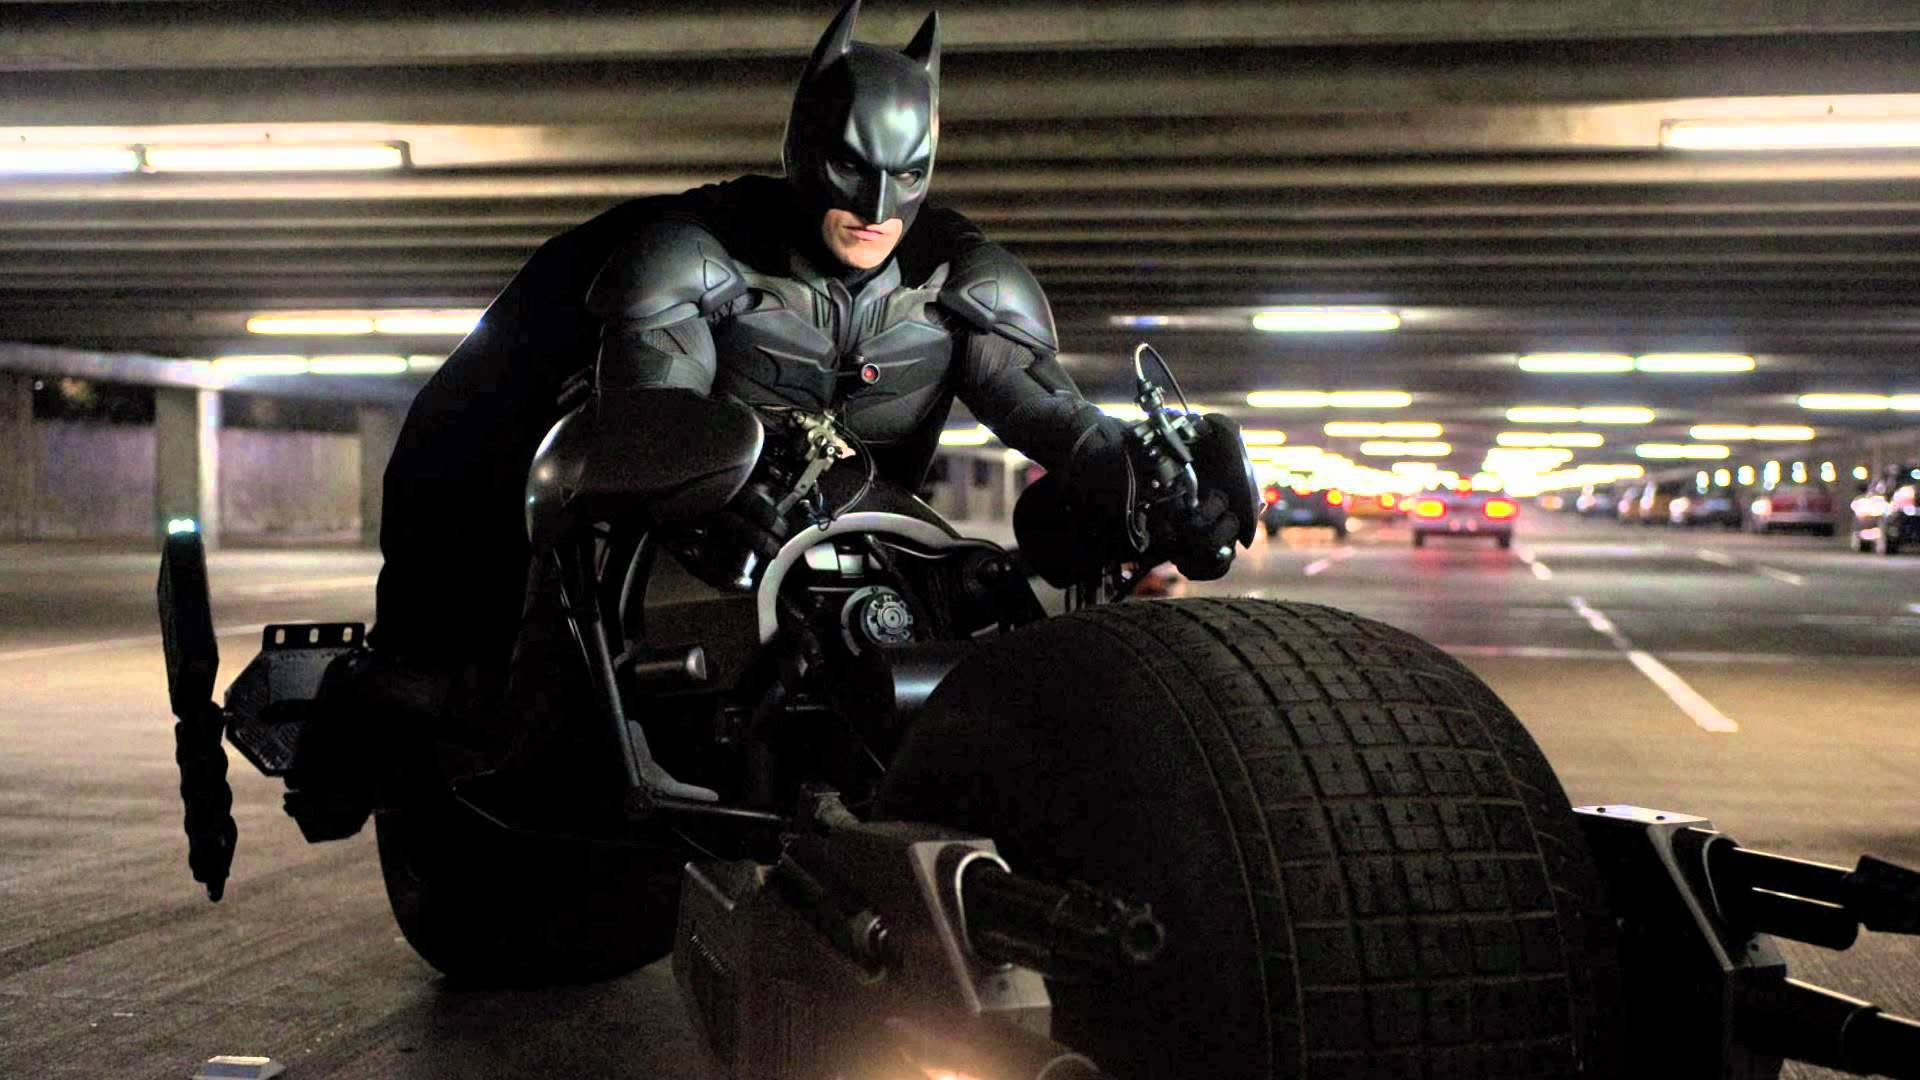 Best Buy Private Auction >> Christian Bale Batman Suit Sells For Small Fortune